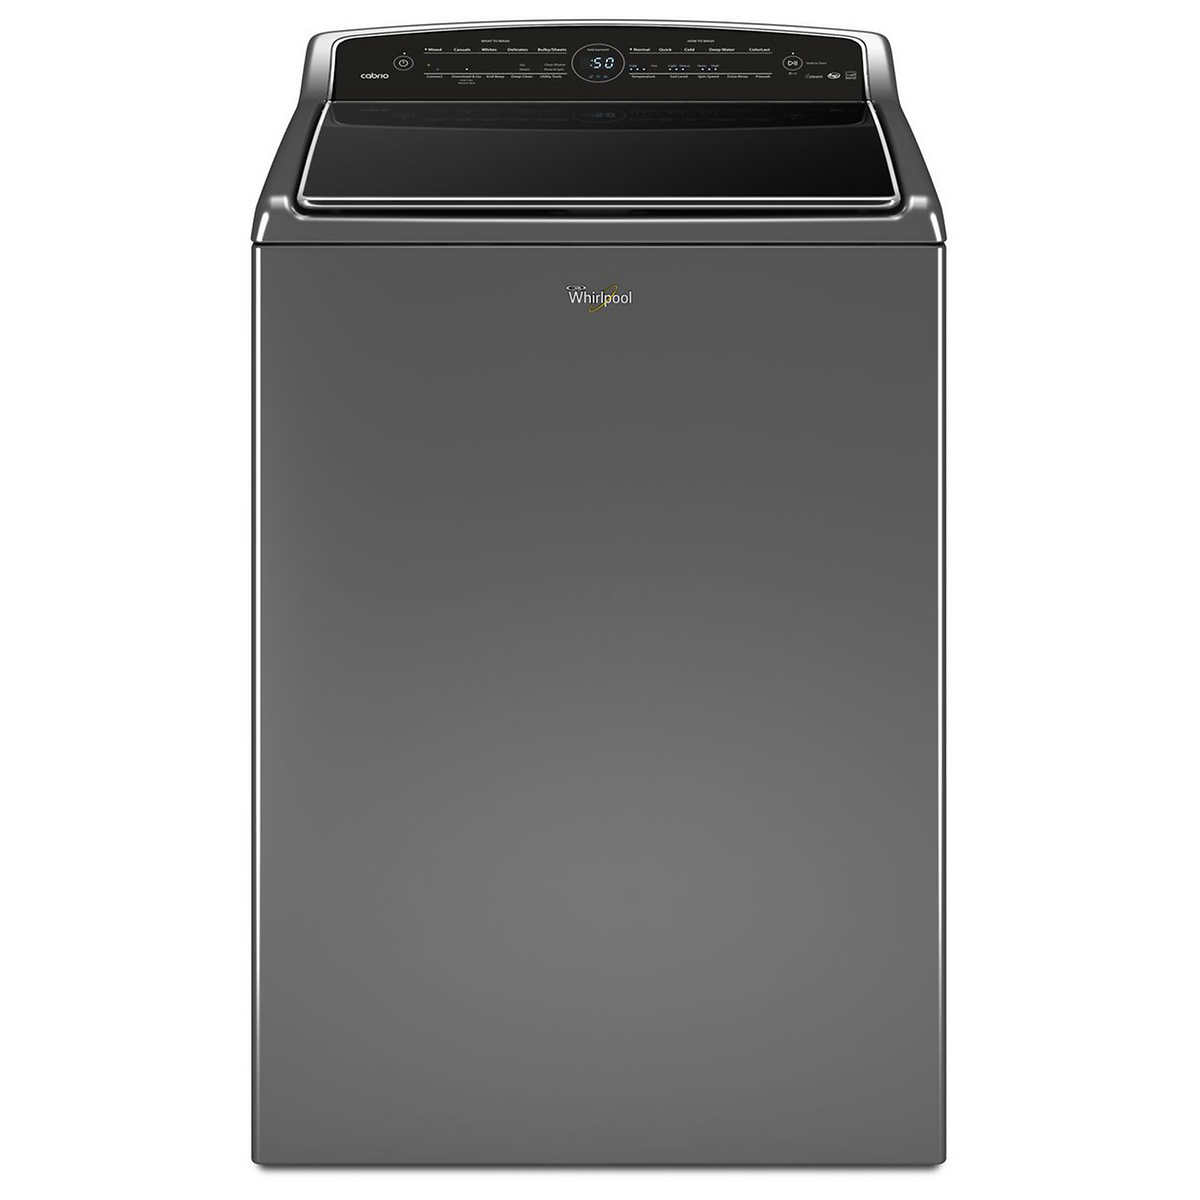 The best top load washer and dryer combo 2015 - Whirlpool 5 3cuft Smart Cabrio Top Load Washer With Laundry App In Chrome Shadow